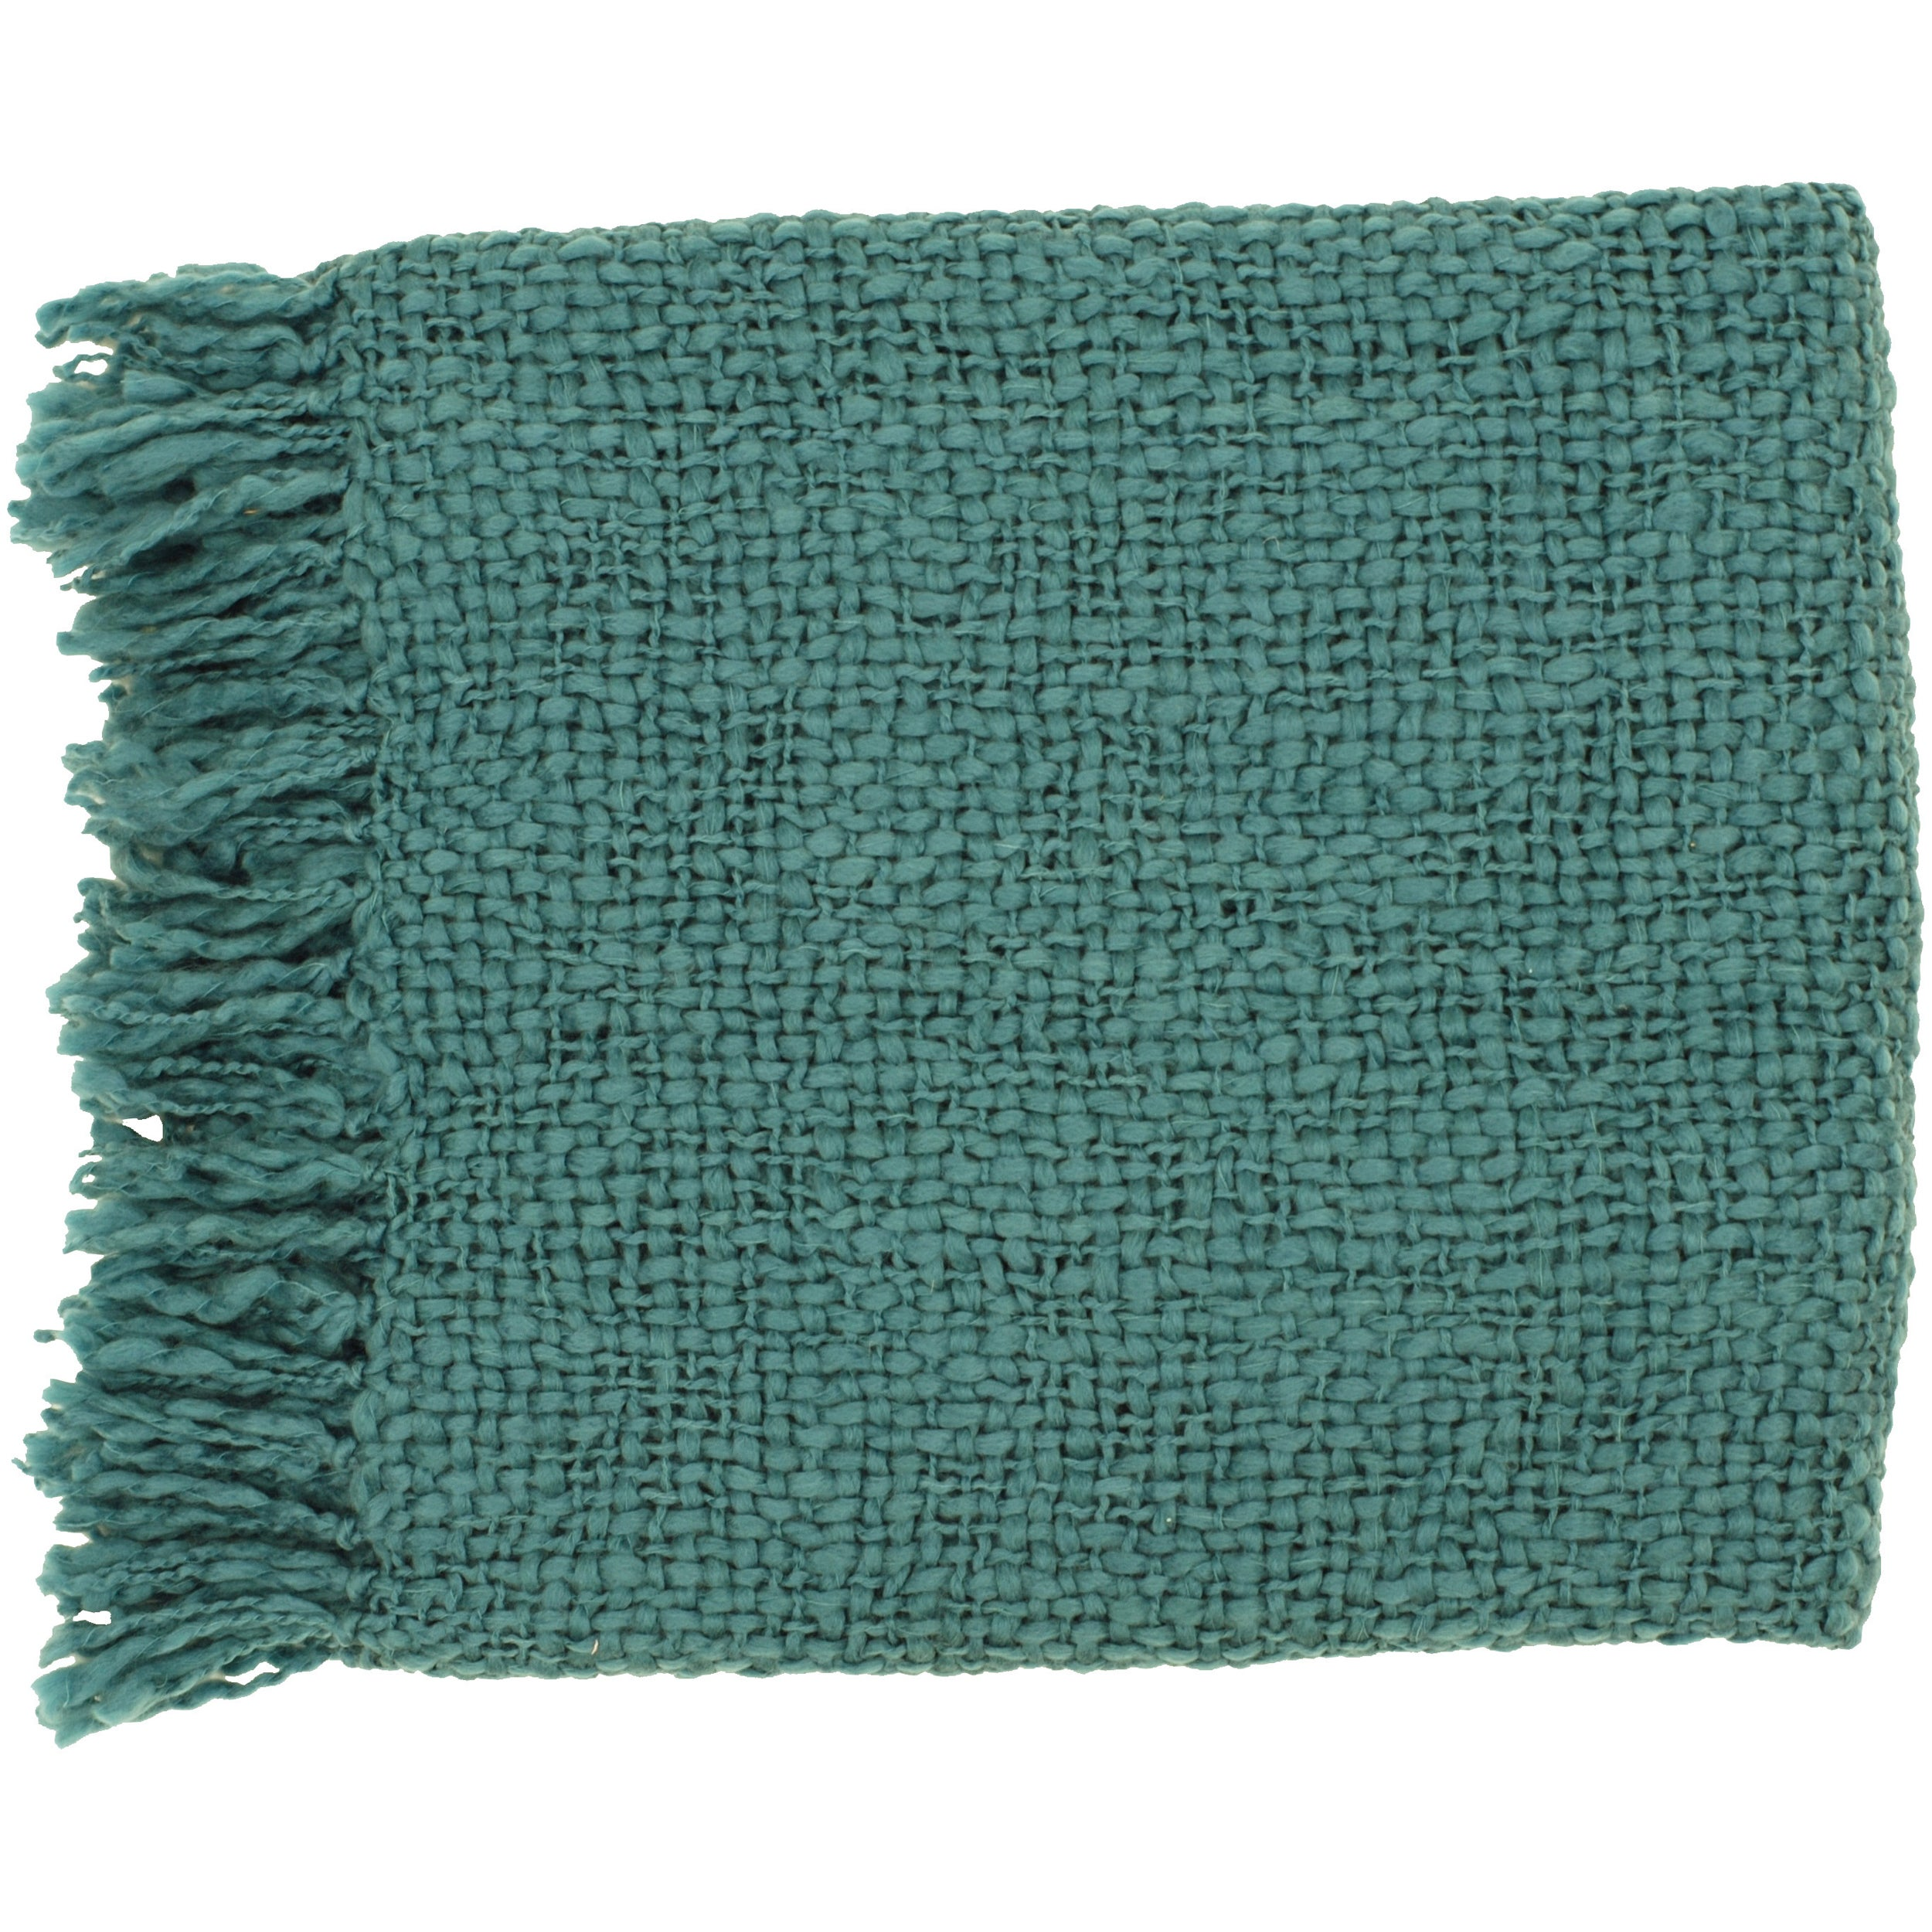 Woven Brandye Acrylic and Wool Throw Blanket